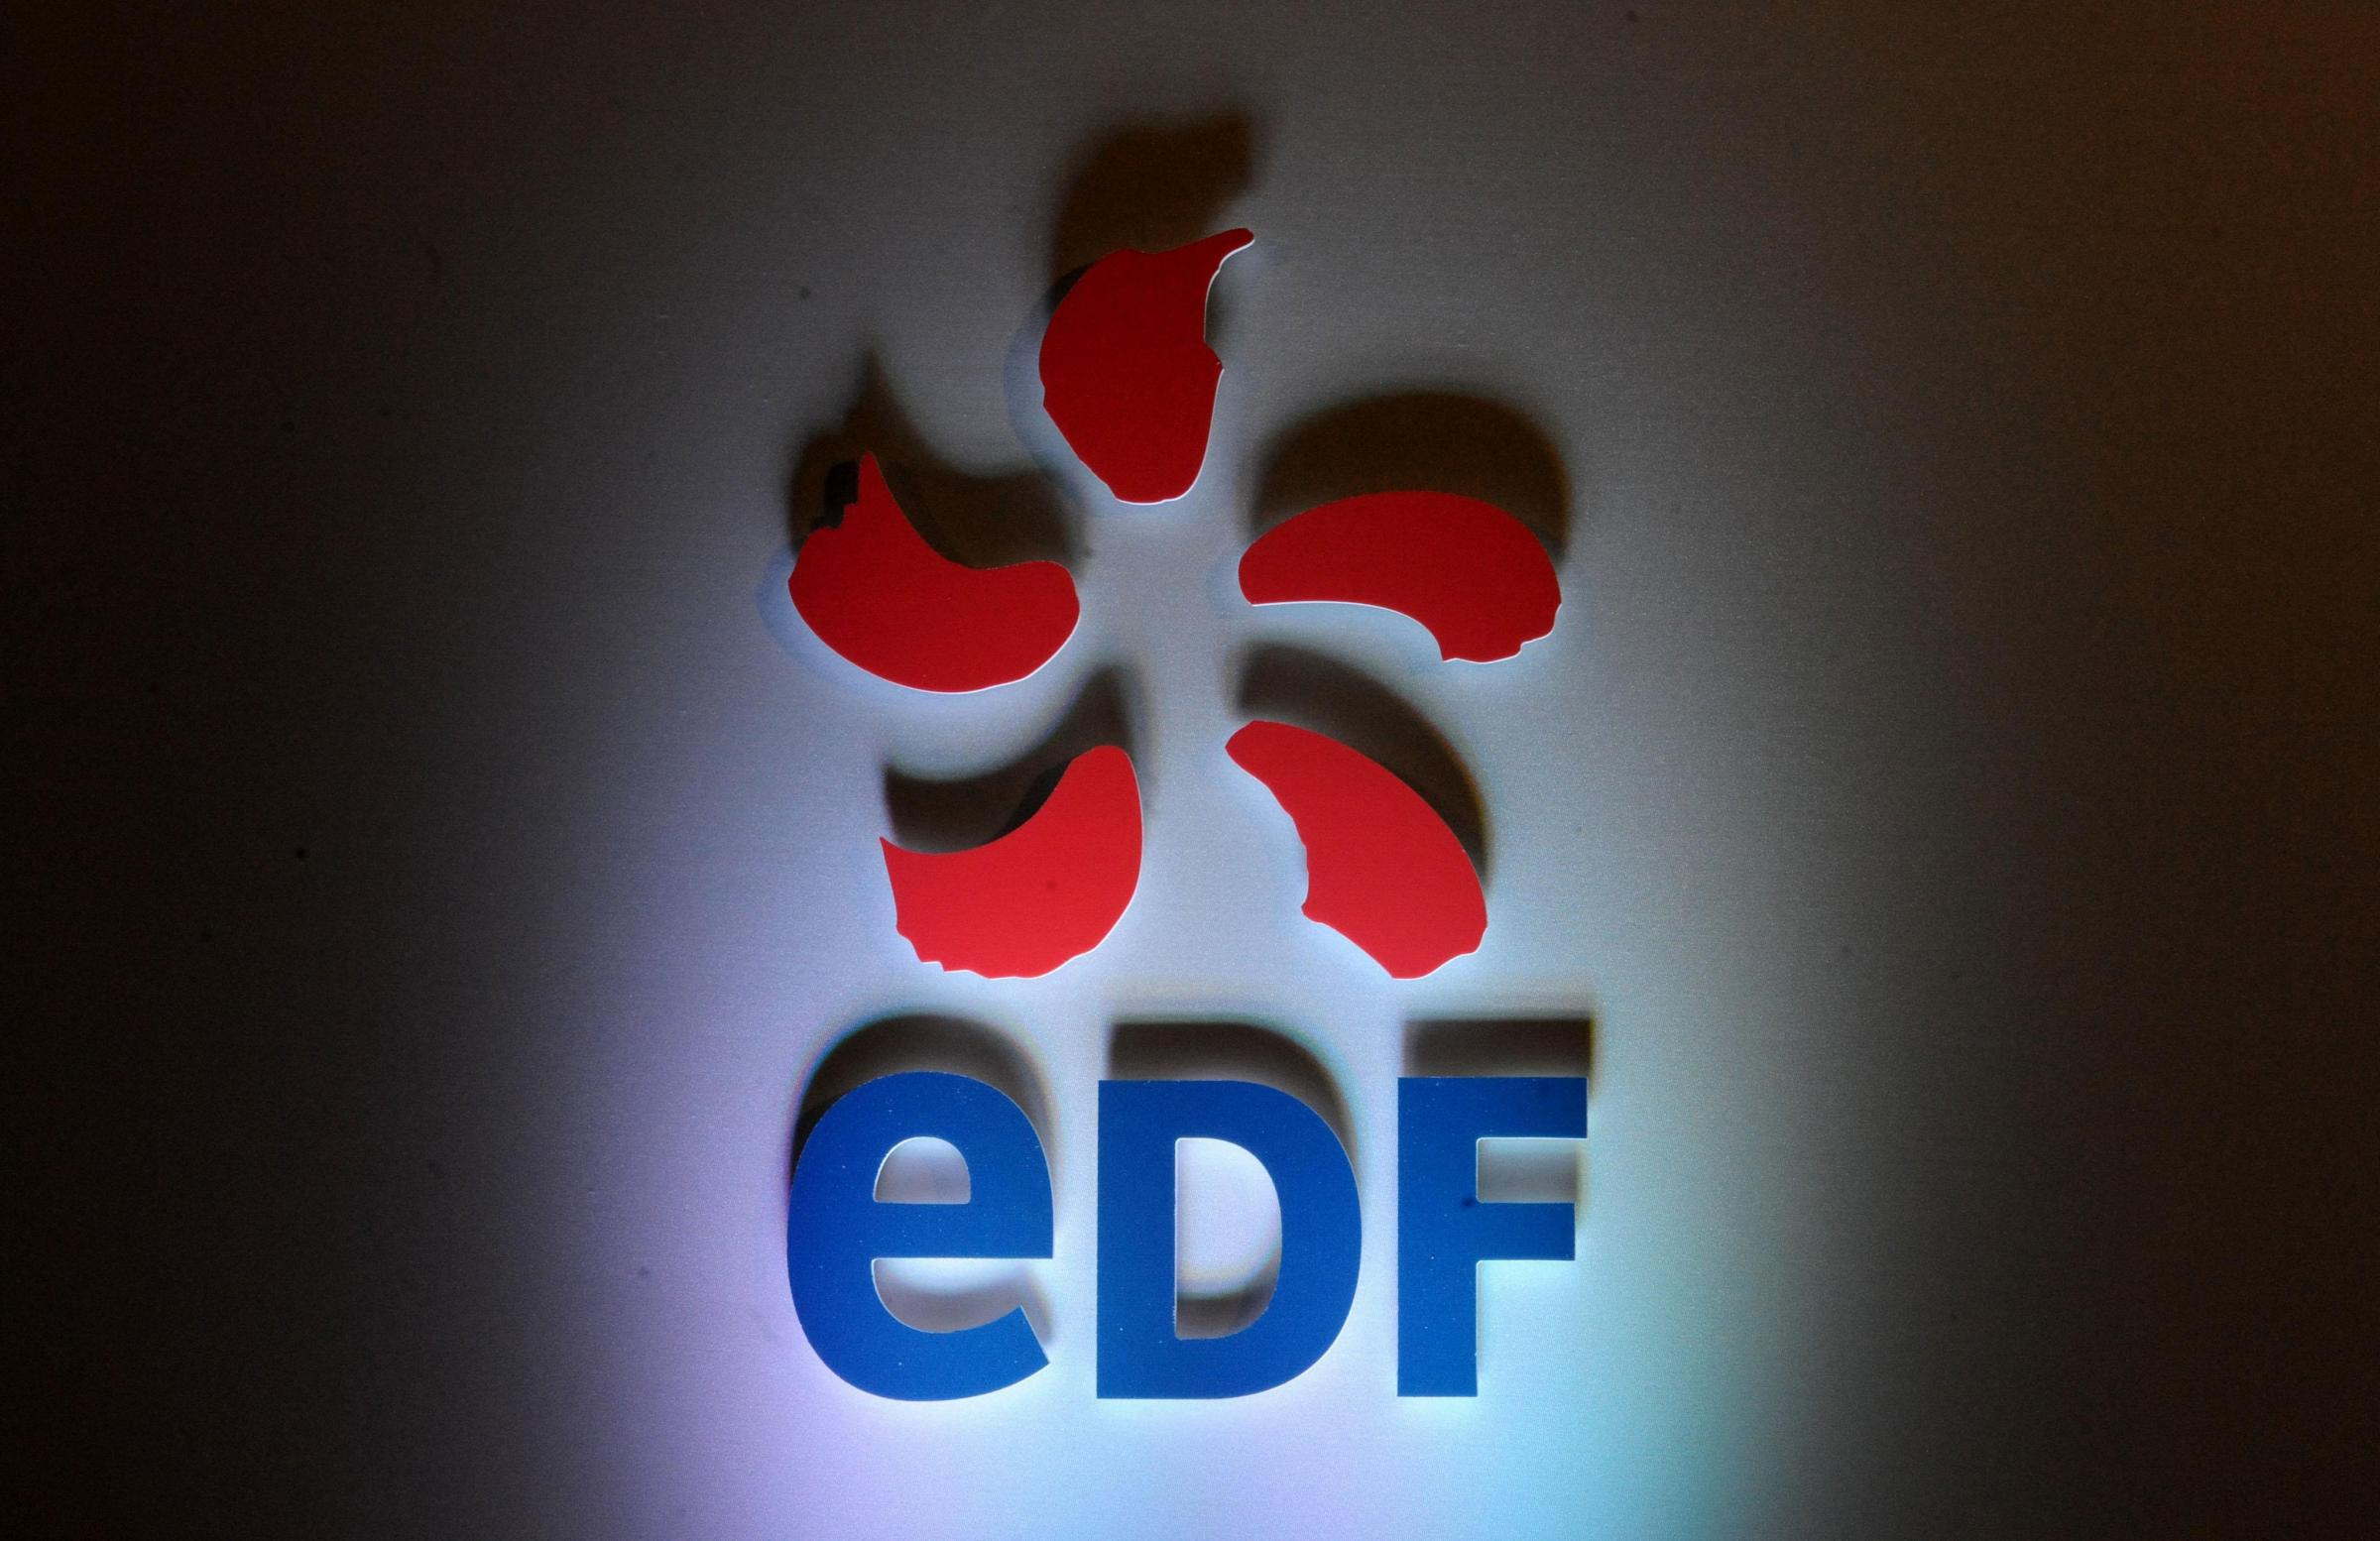 Some employees of EDF are unhappy at the company's pay offer.